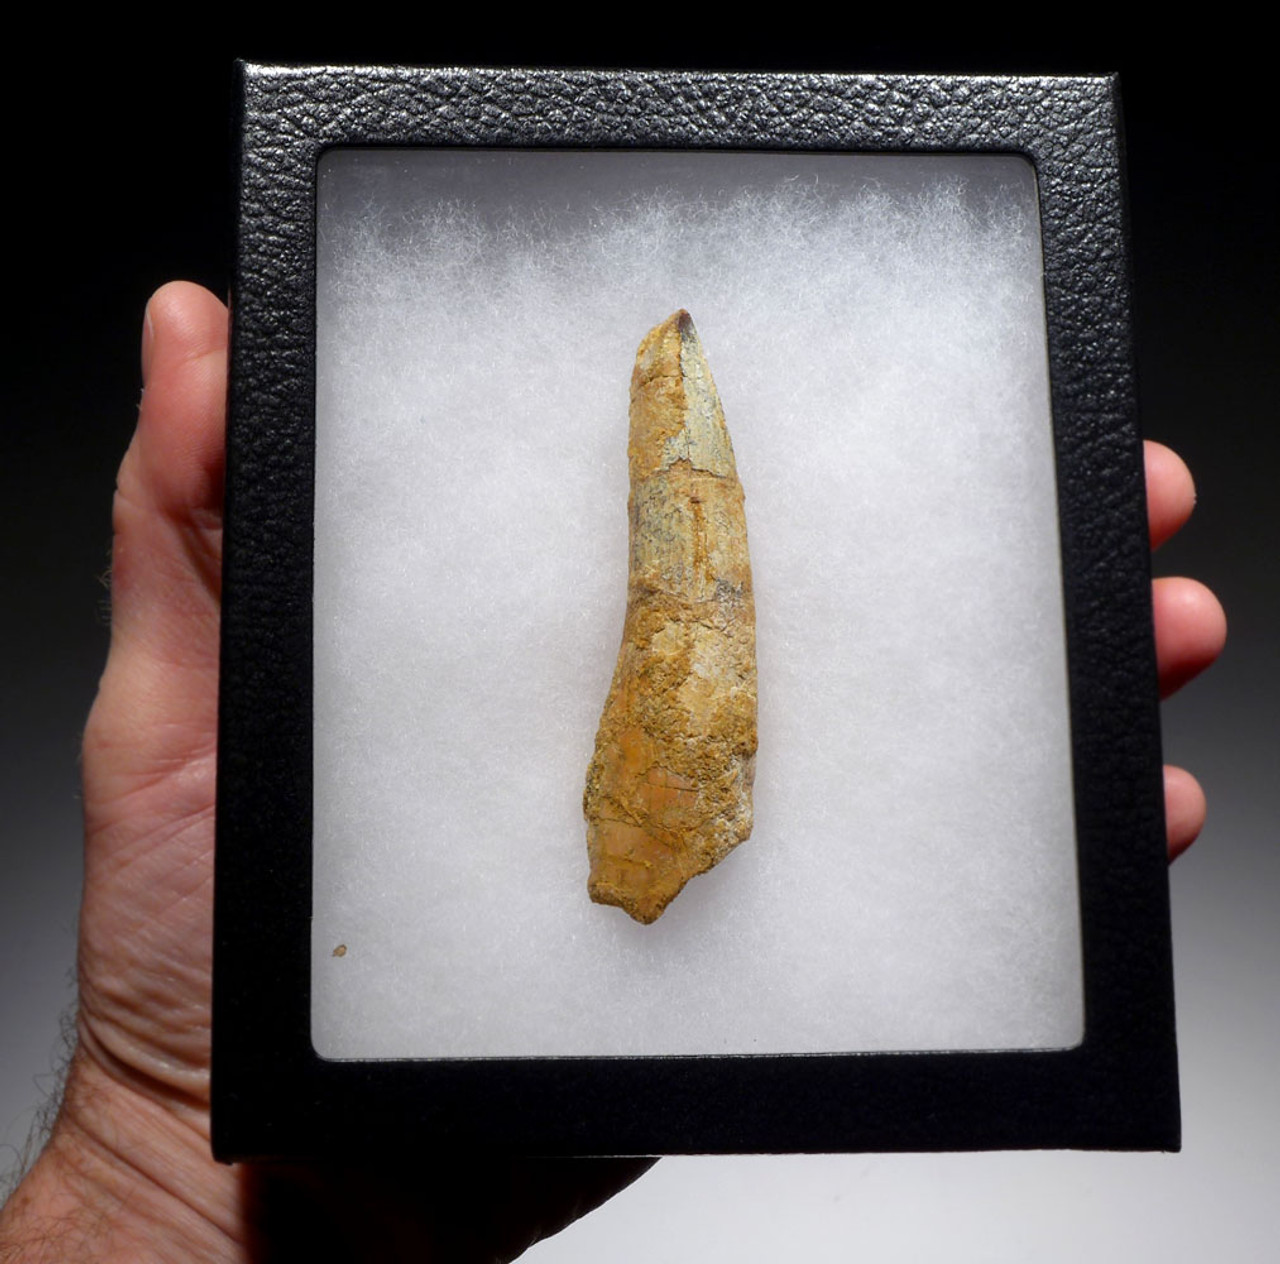 LARGE AND UGLY 3 INCH SPINOSAURUS DINOSAUR FOSSIL TOOTH *DT5-391